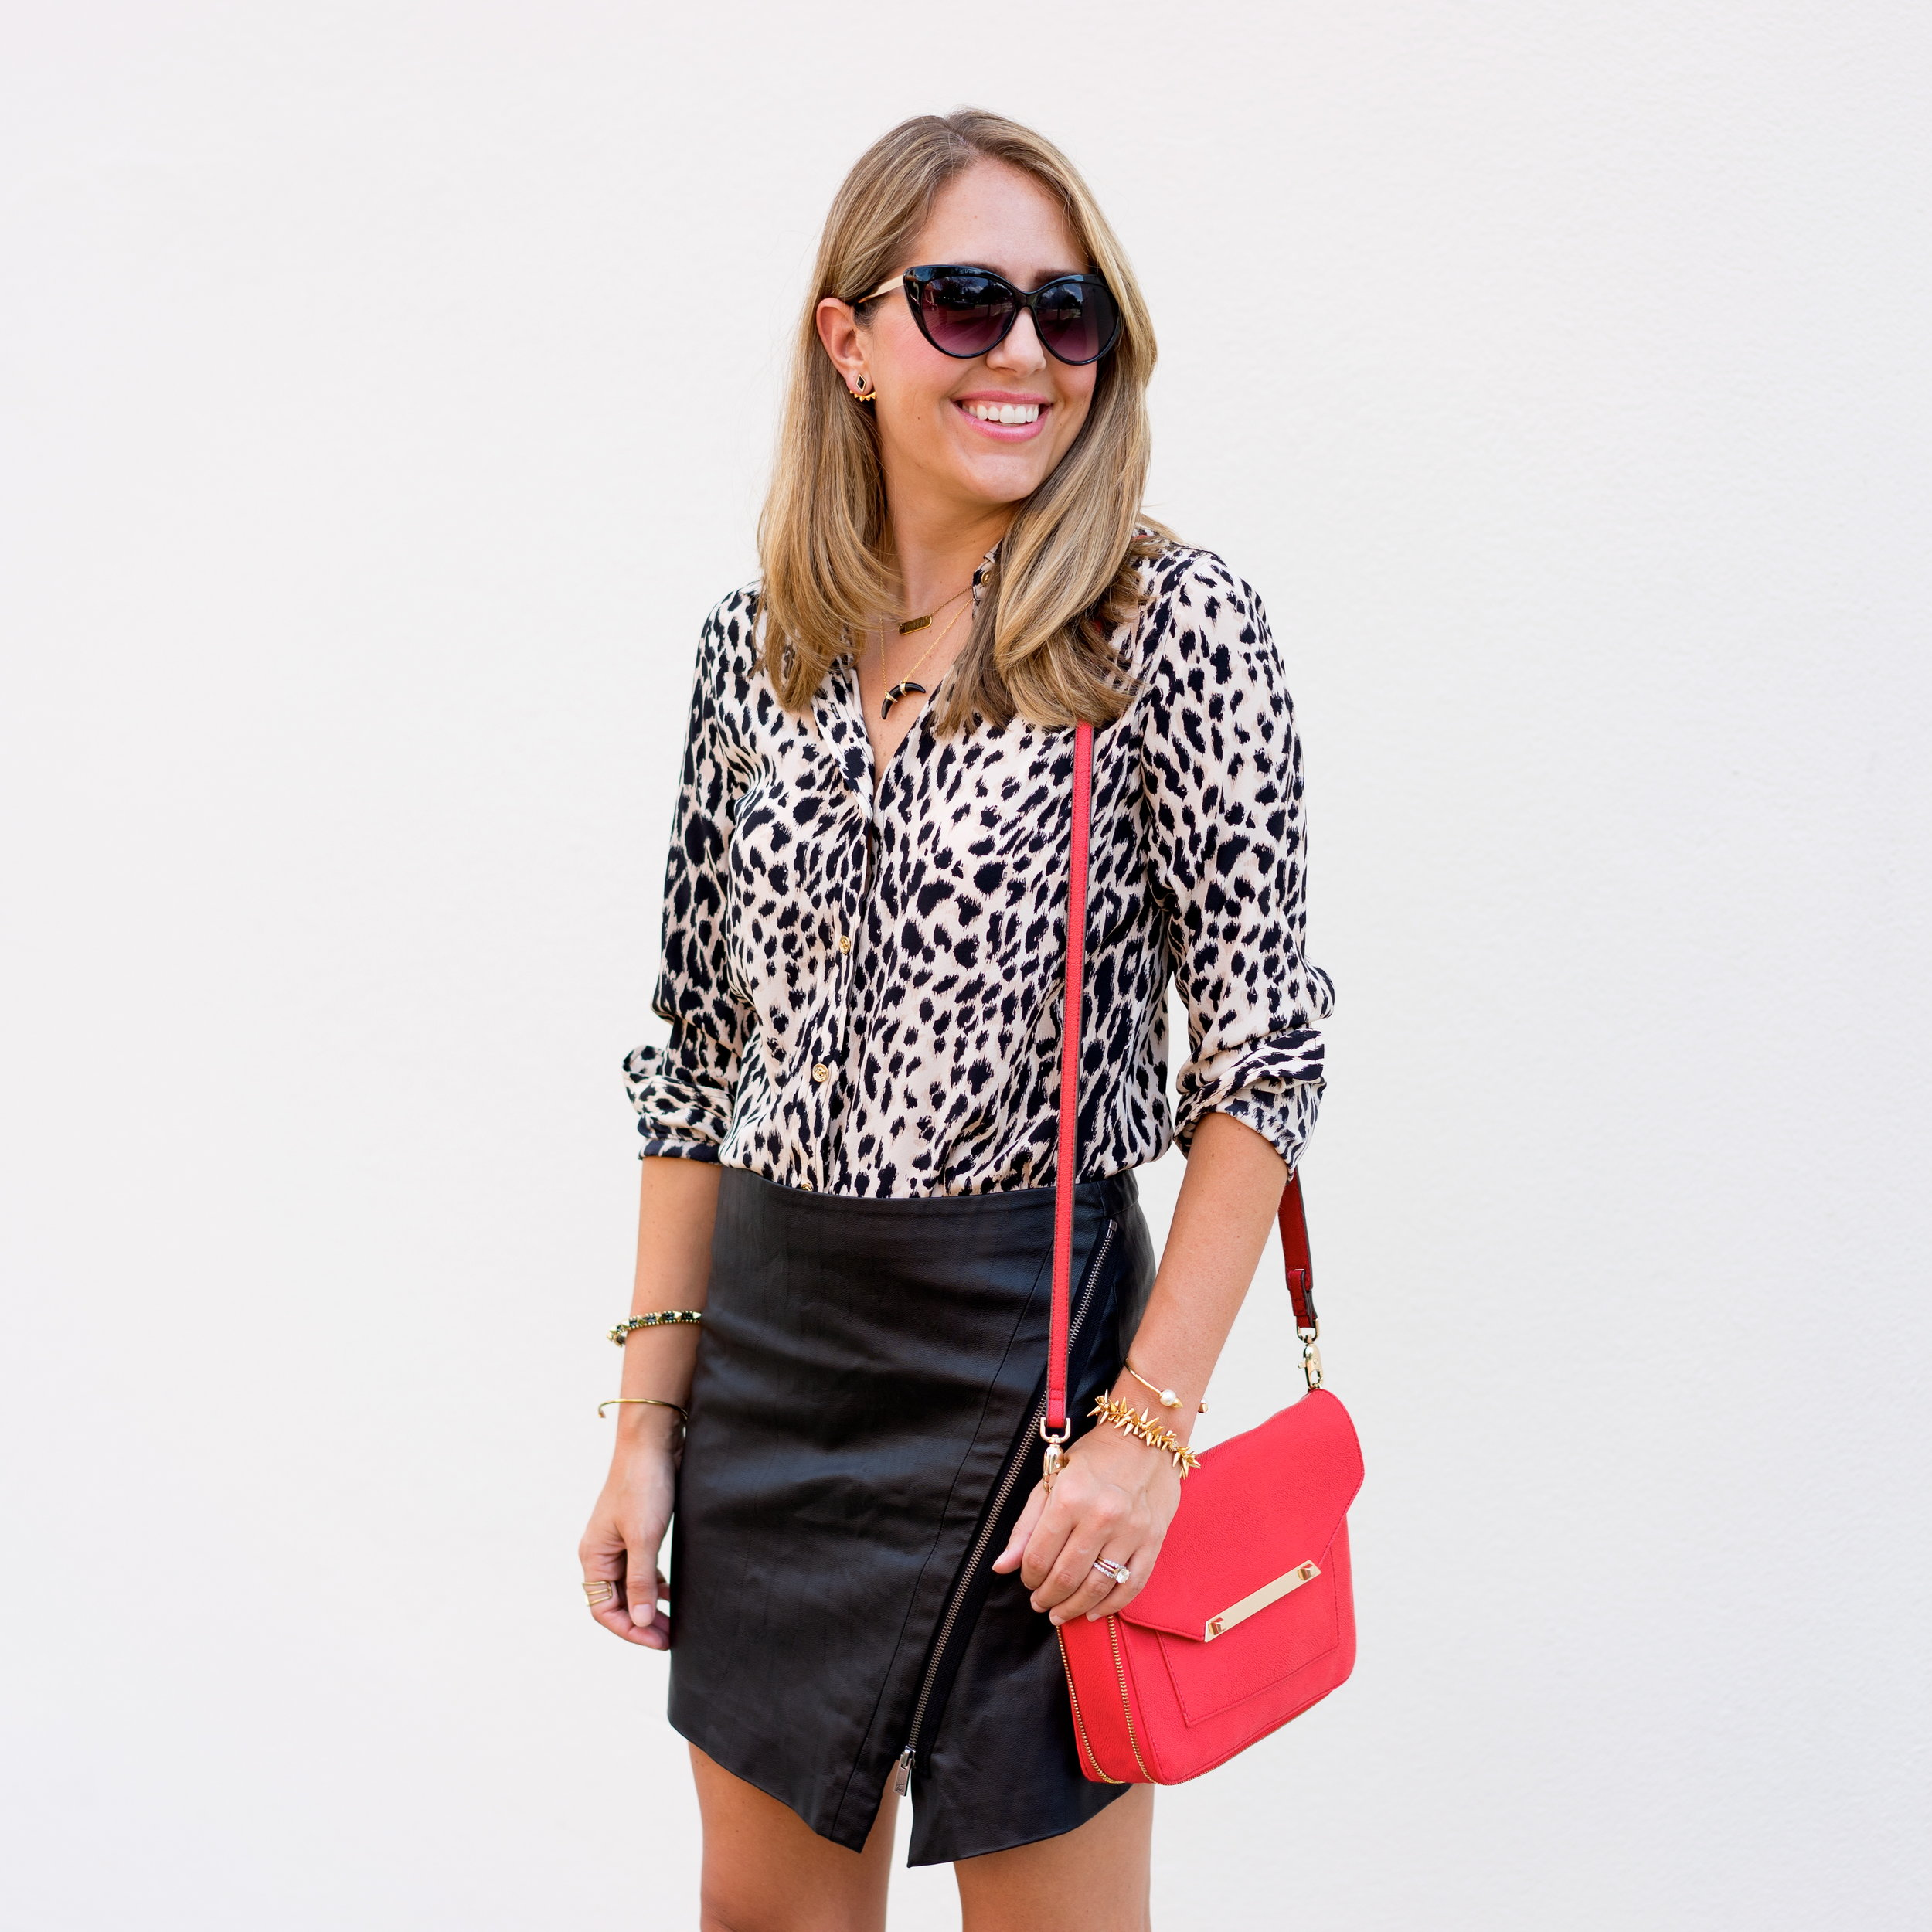 Leopard top, leather skirt, red purse